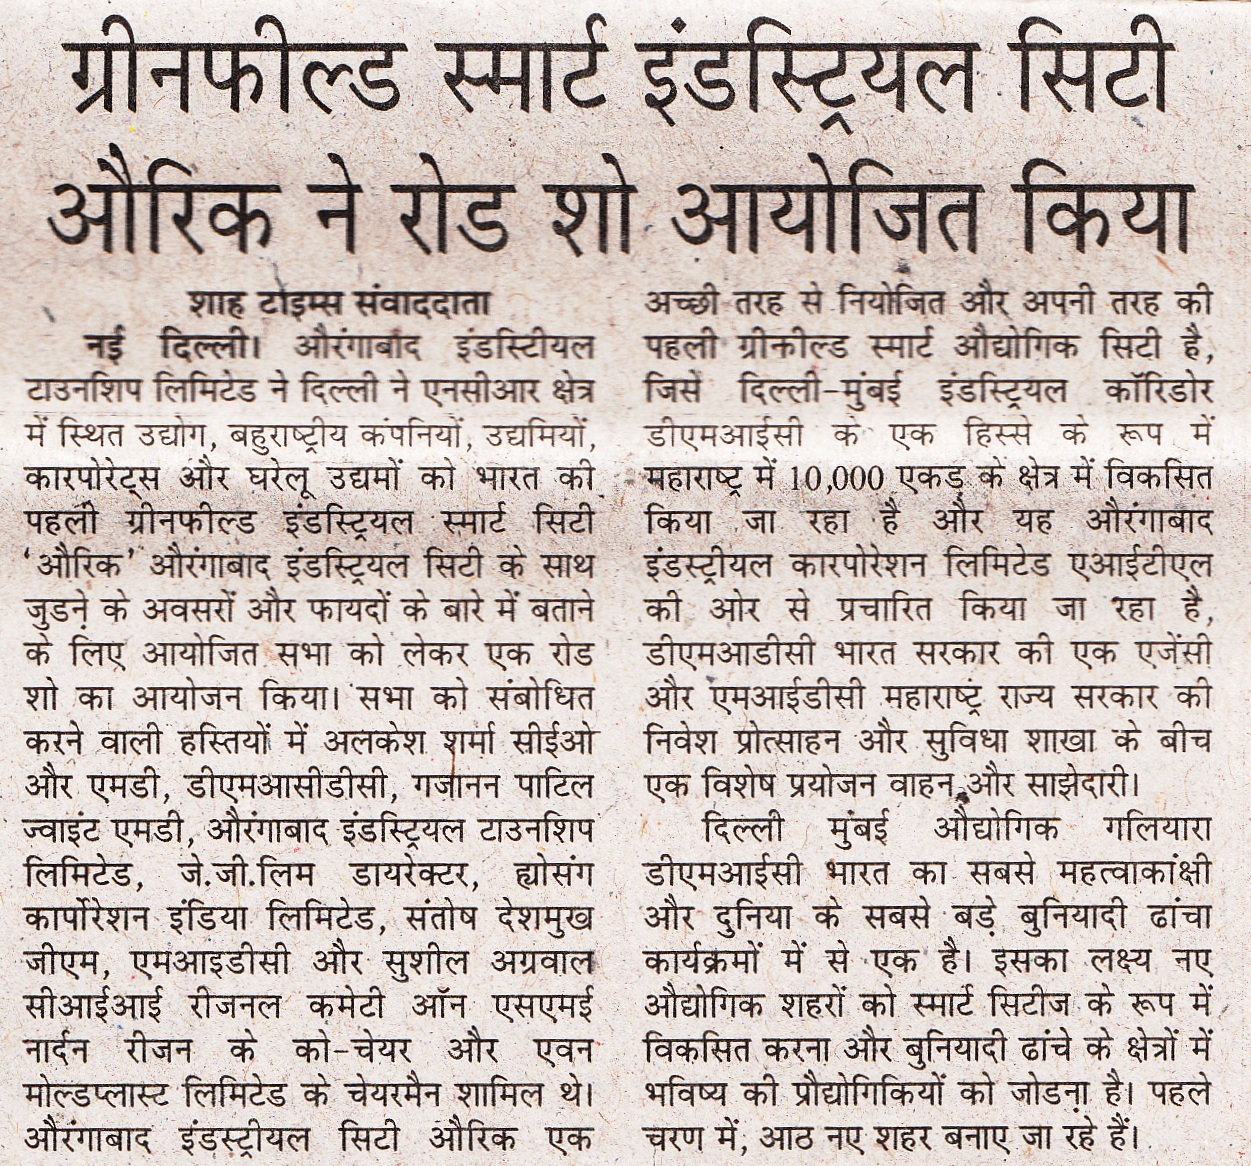 Road Shows Organized by Greenfield Smart Industrial City AURIC (Published on Shah Times, Dated 18 May 2019 - Page 5)